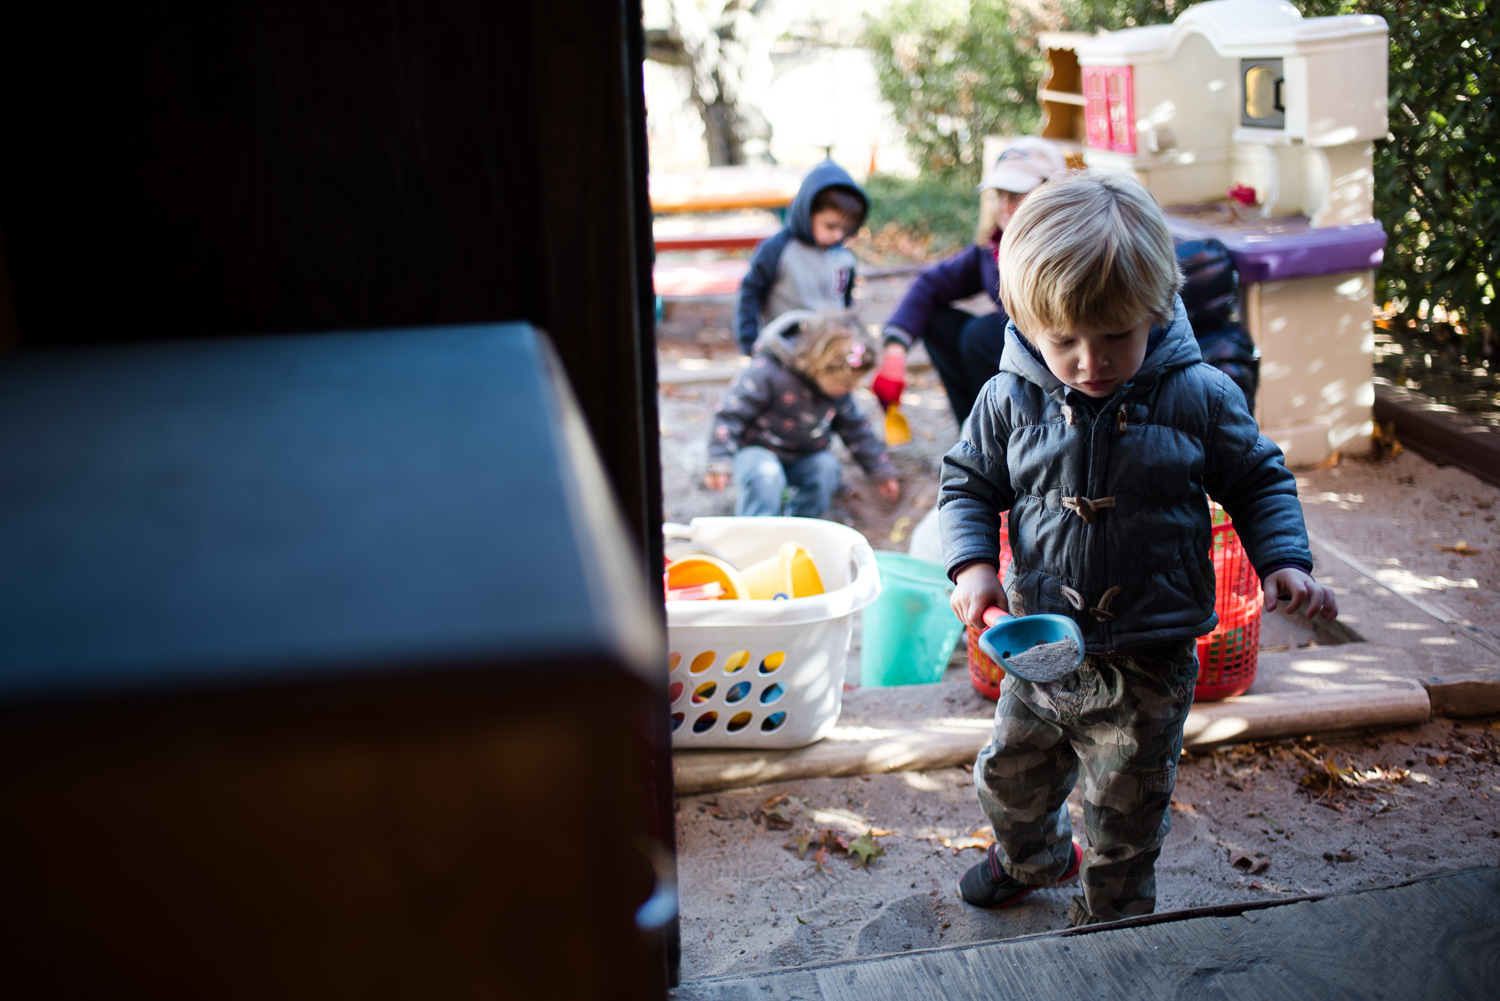 Kids playing in sand box at nursery school.